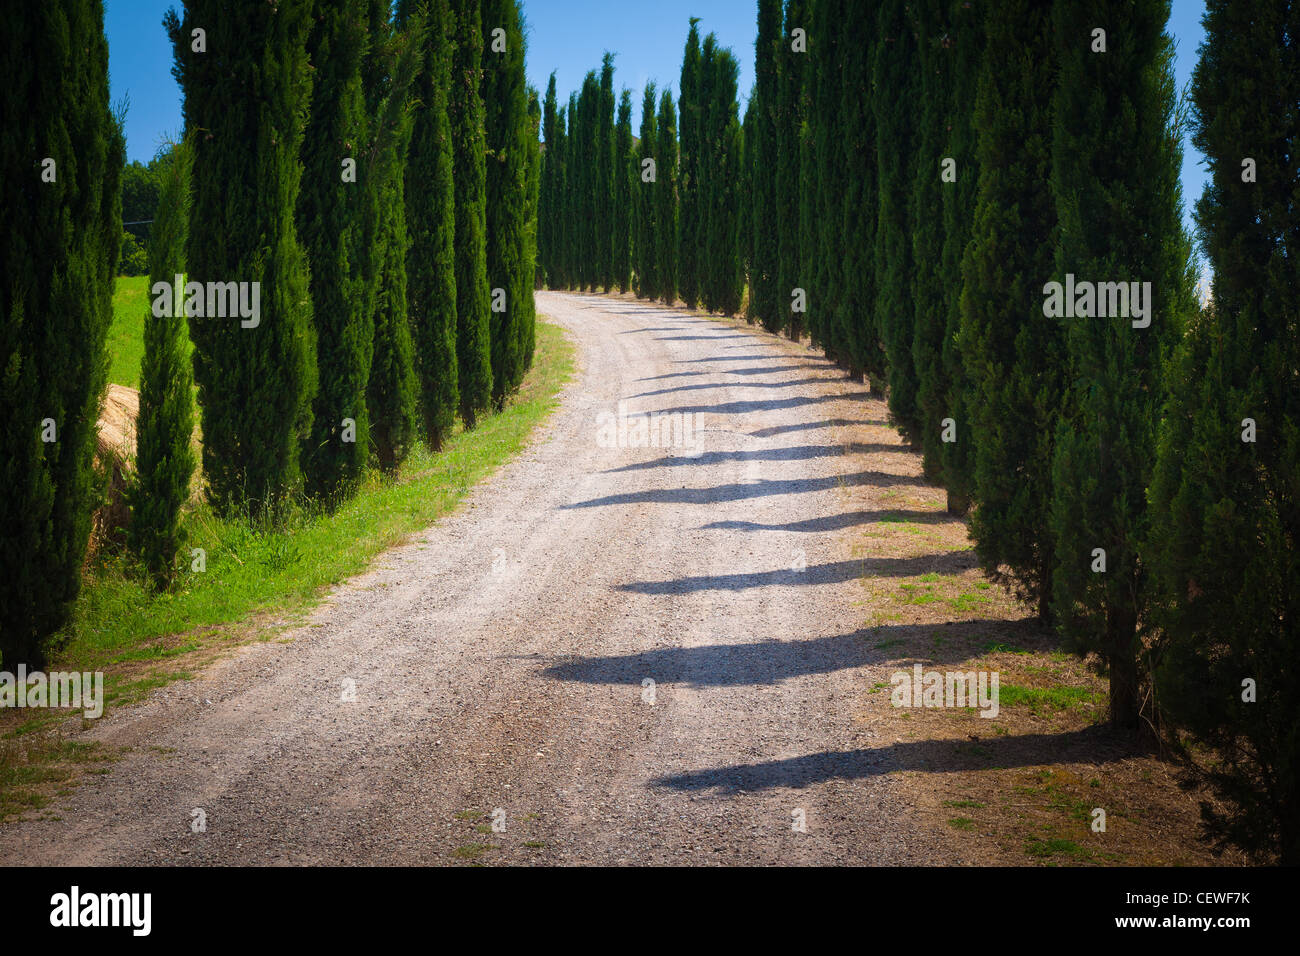 Road lined with cypresses in the Tuscan countryside - Stock Image